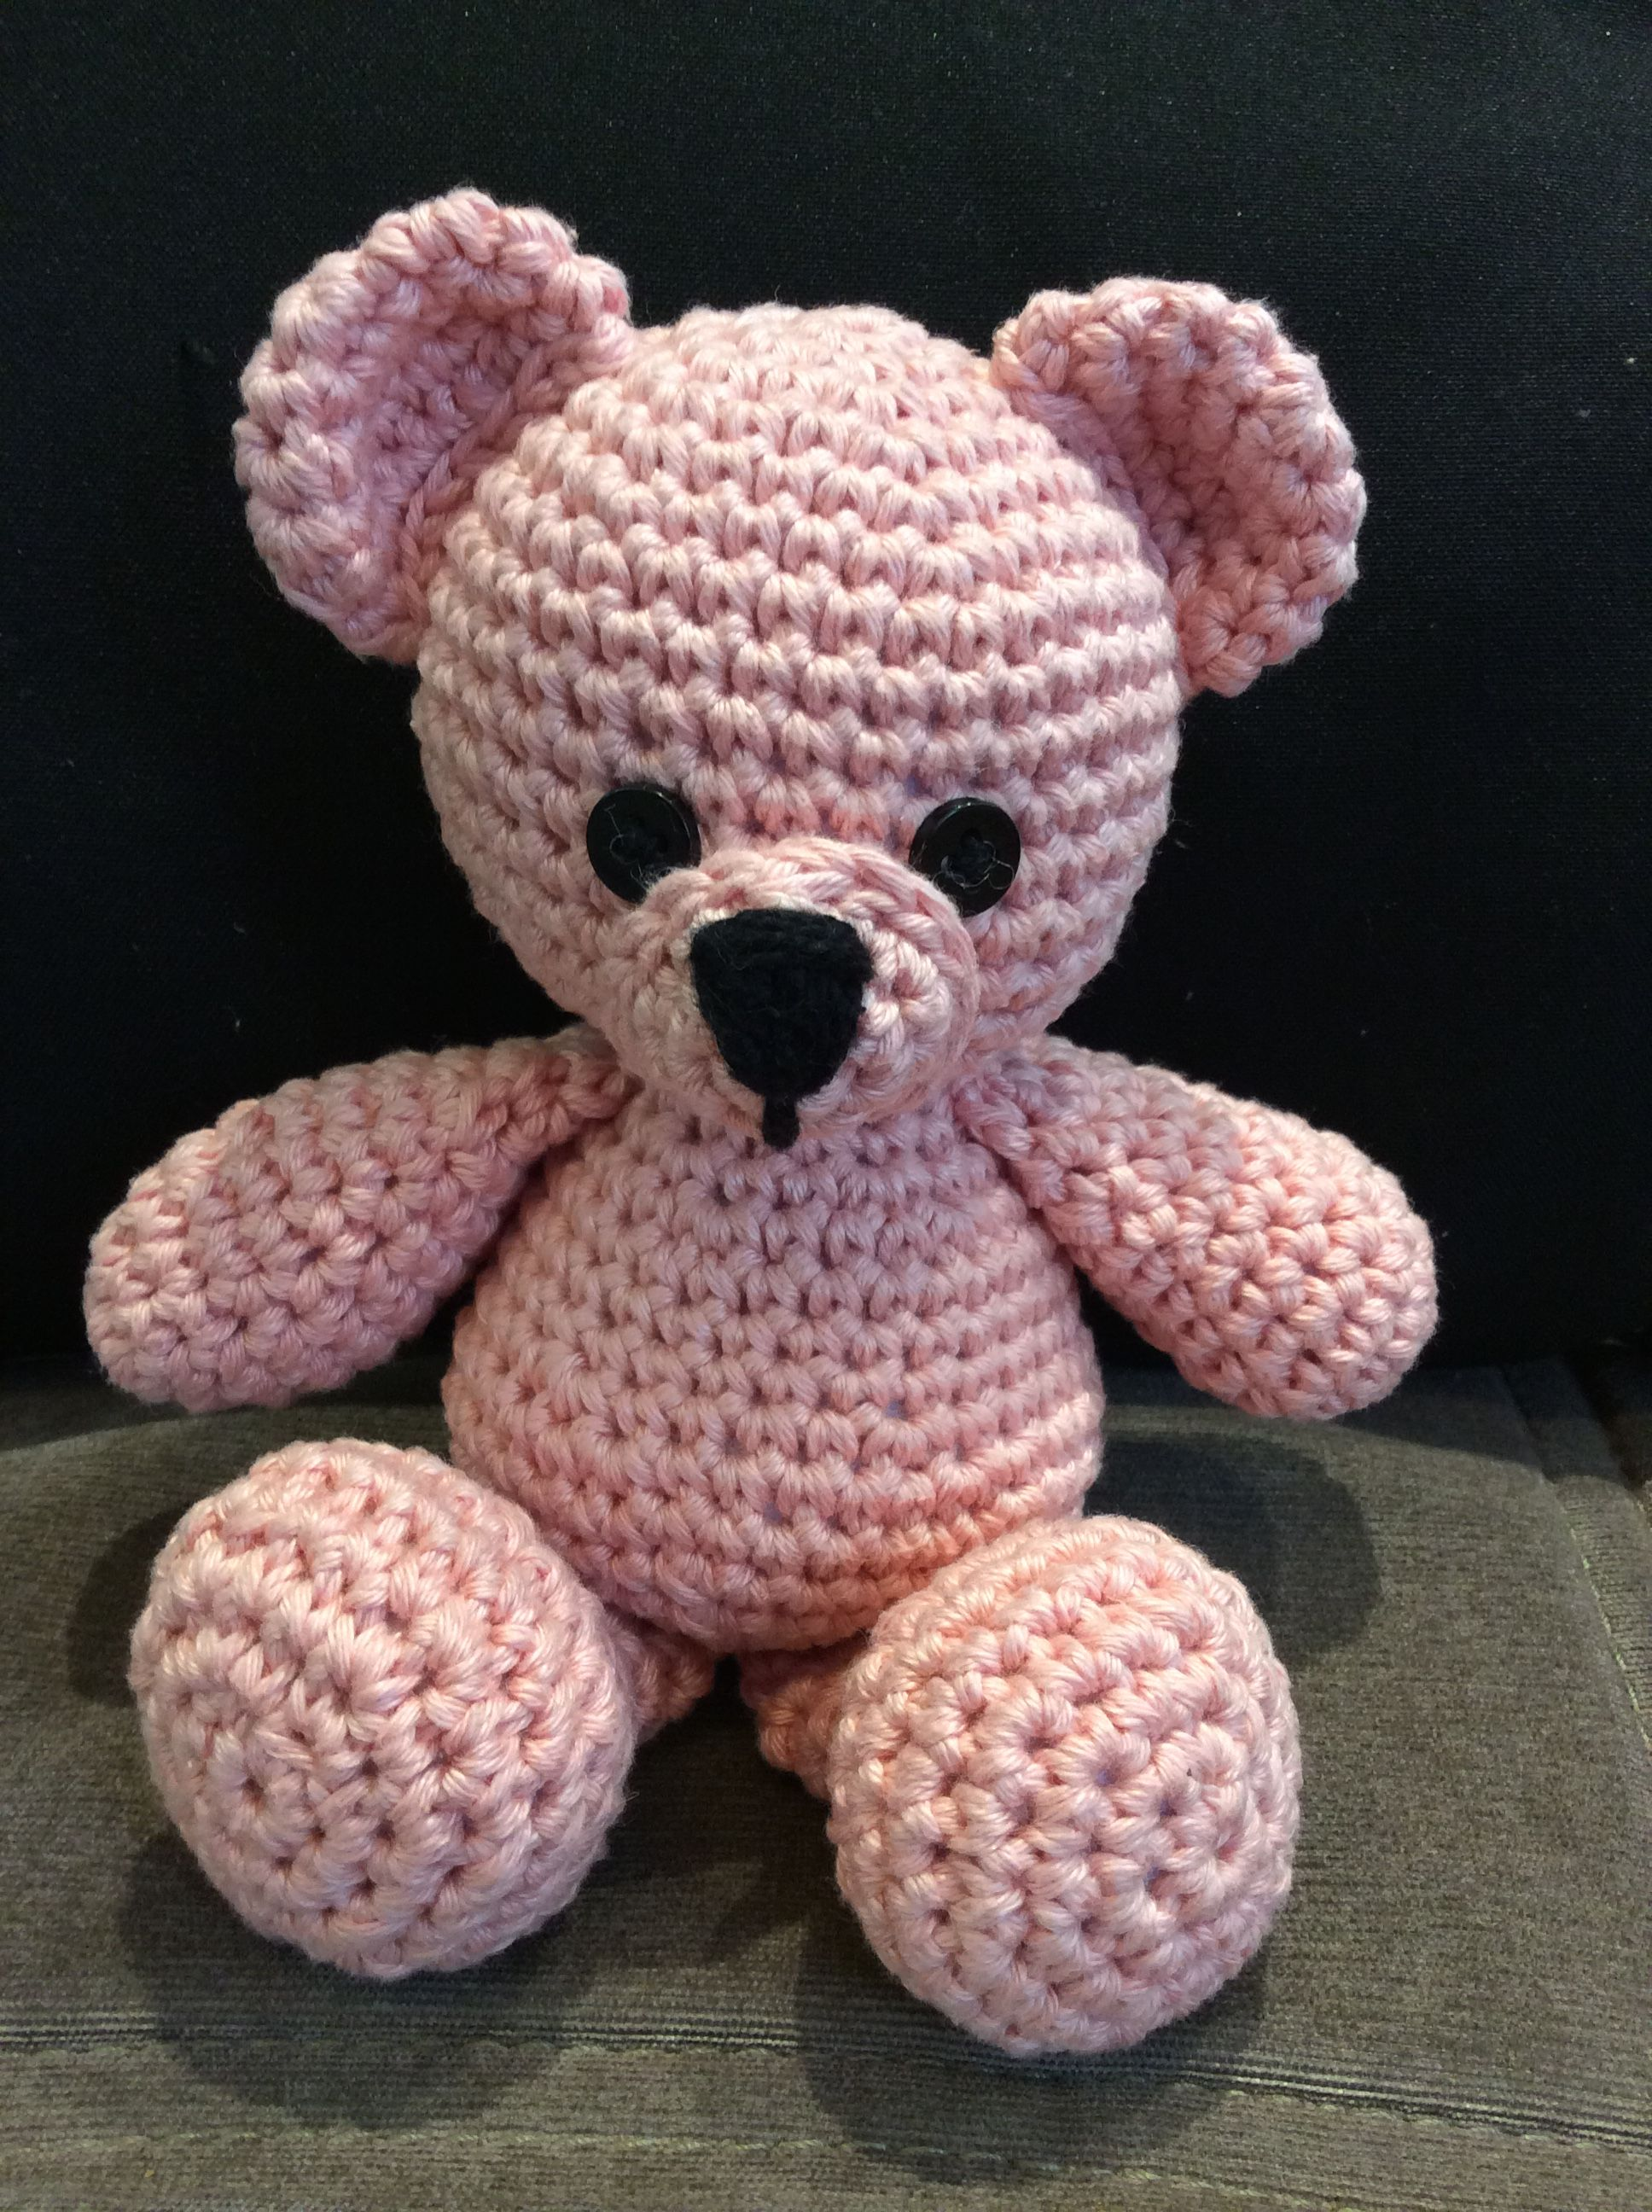 Elegant Free Crochet Teddy Bear Pattern | Crochet teddy bear ... | 2592x1936